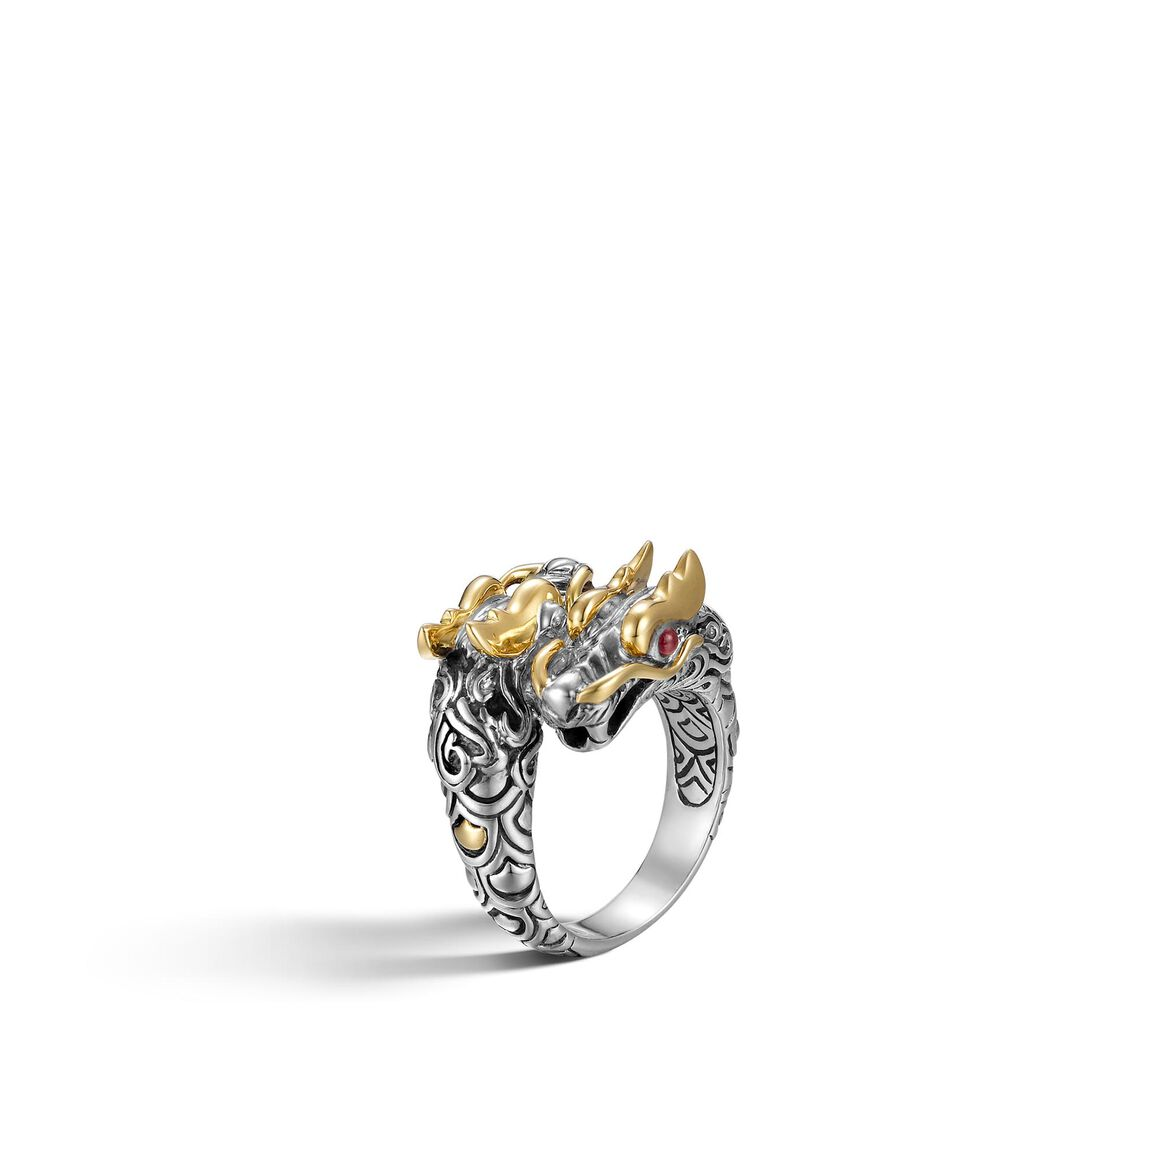 Legends Naga Double Head Bypass Ring in Silver and 18K Gold